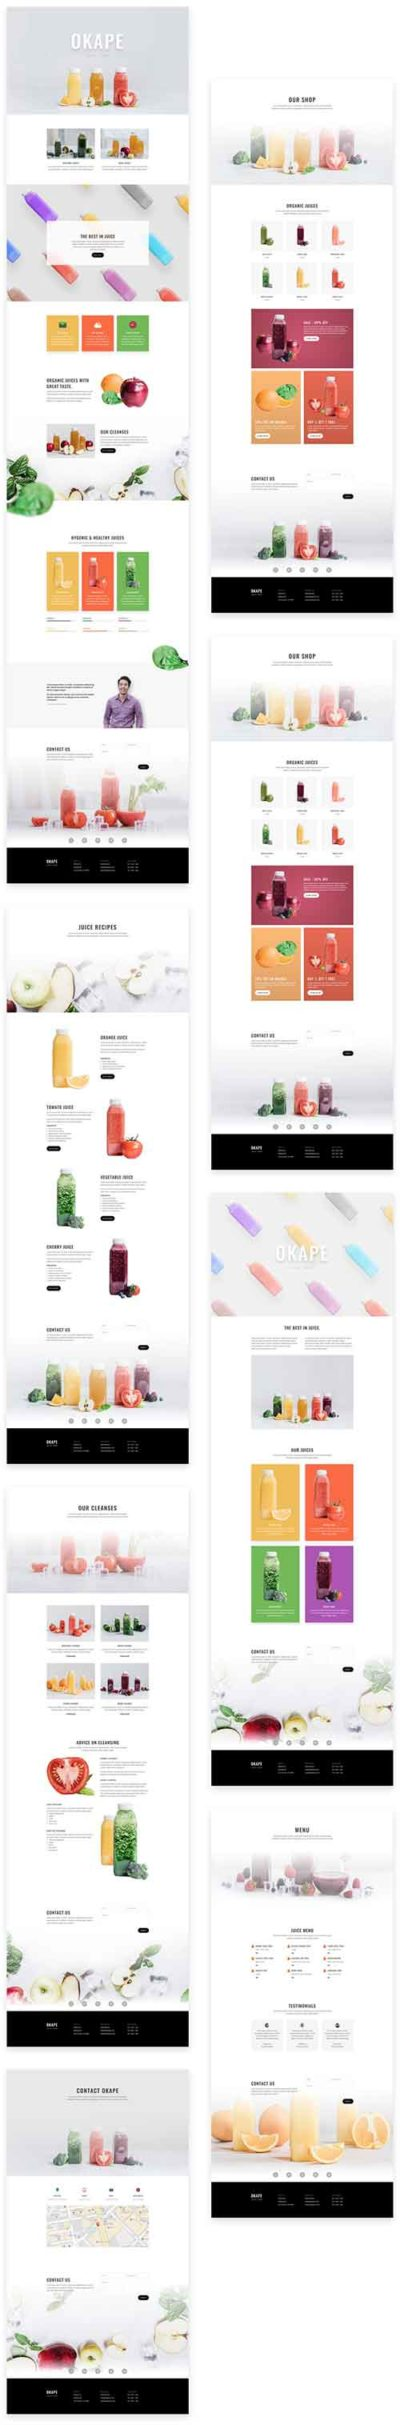 free divi layout for juice bar shop